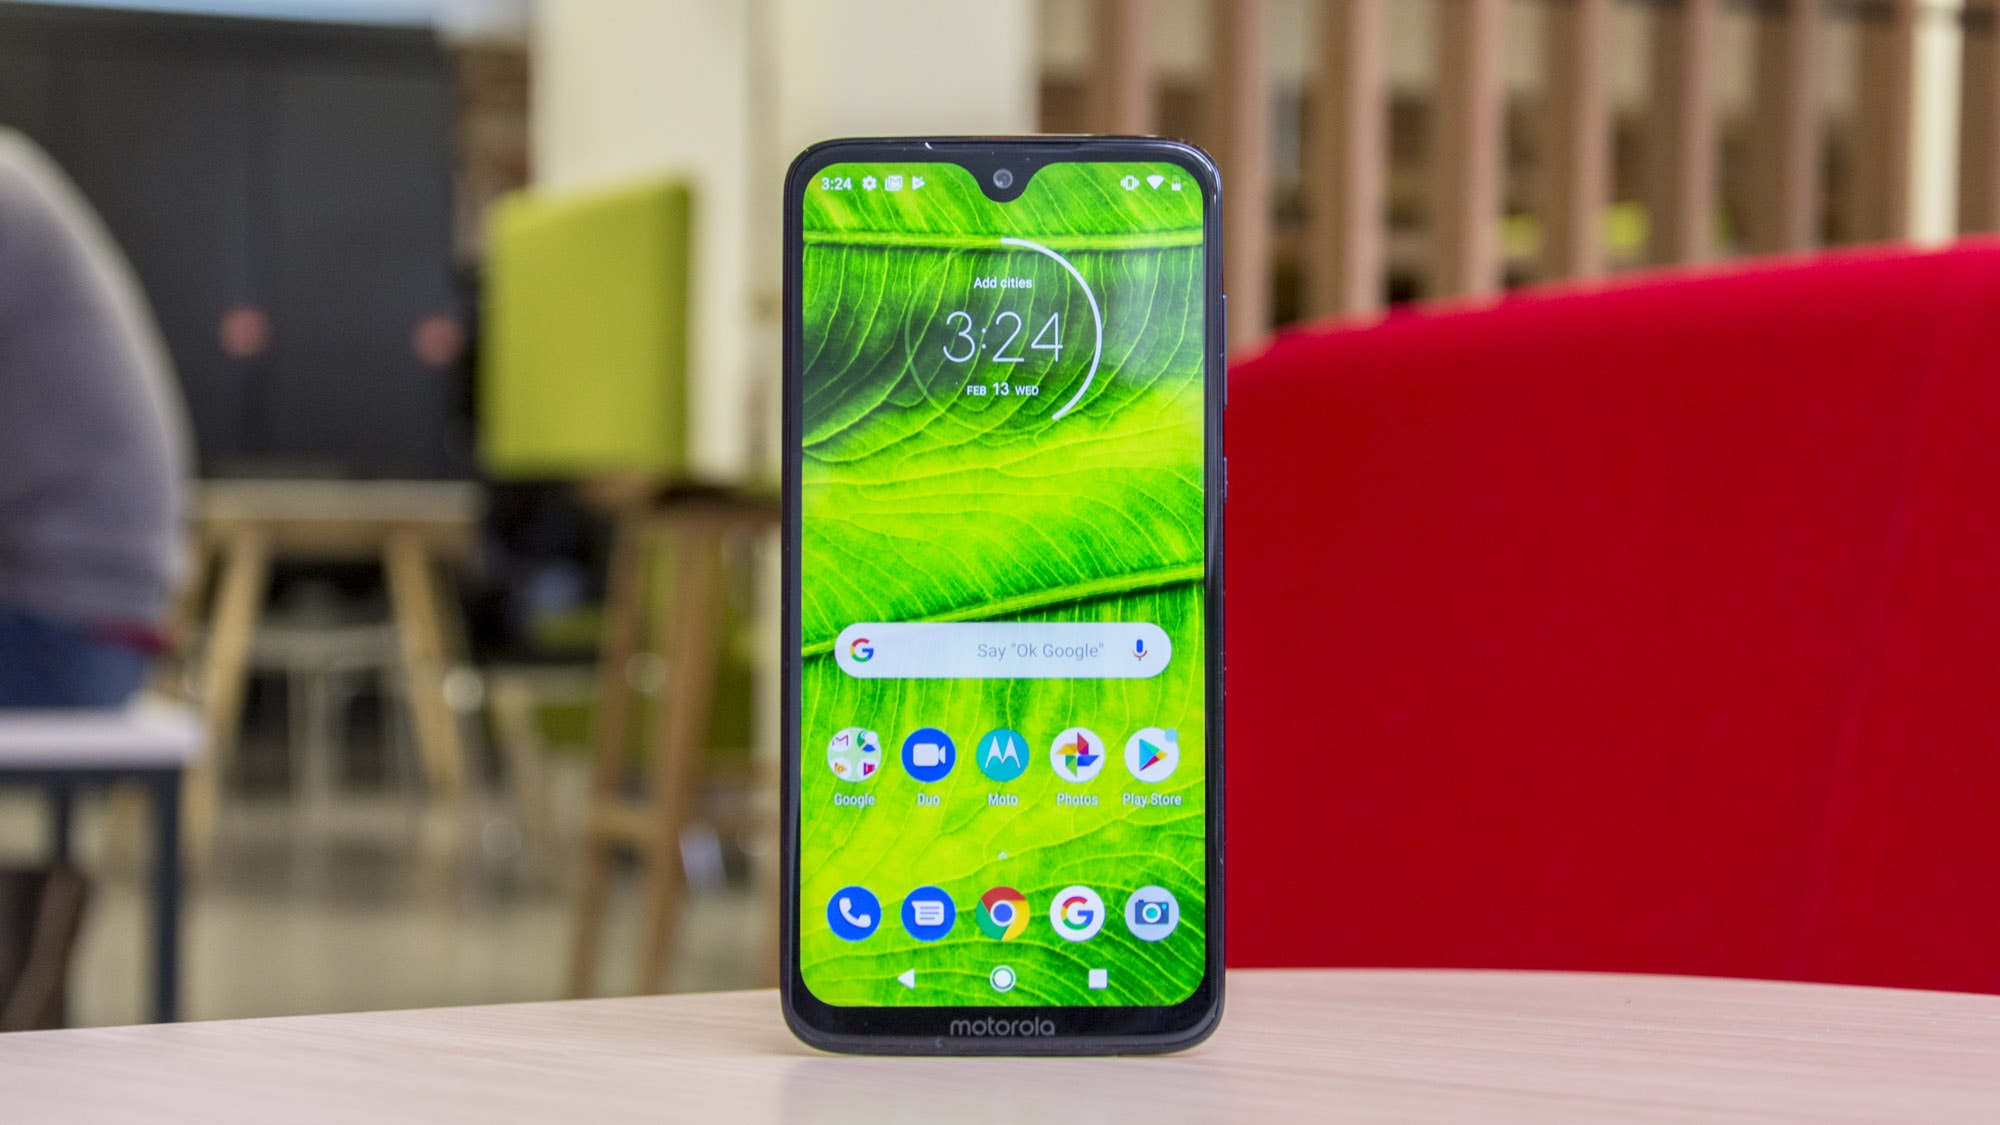 10. Moto G7 Plus – The Best Smartphone of 2019 Among the Cheap Options